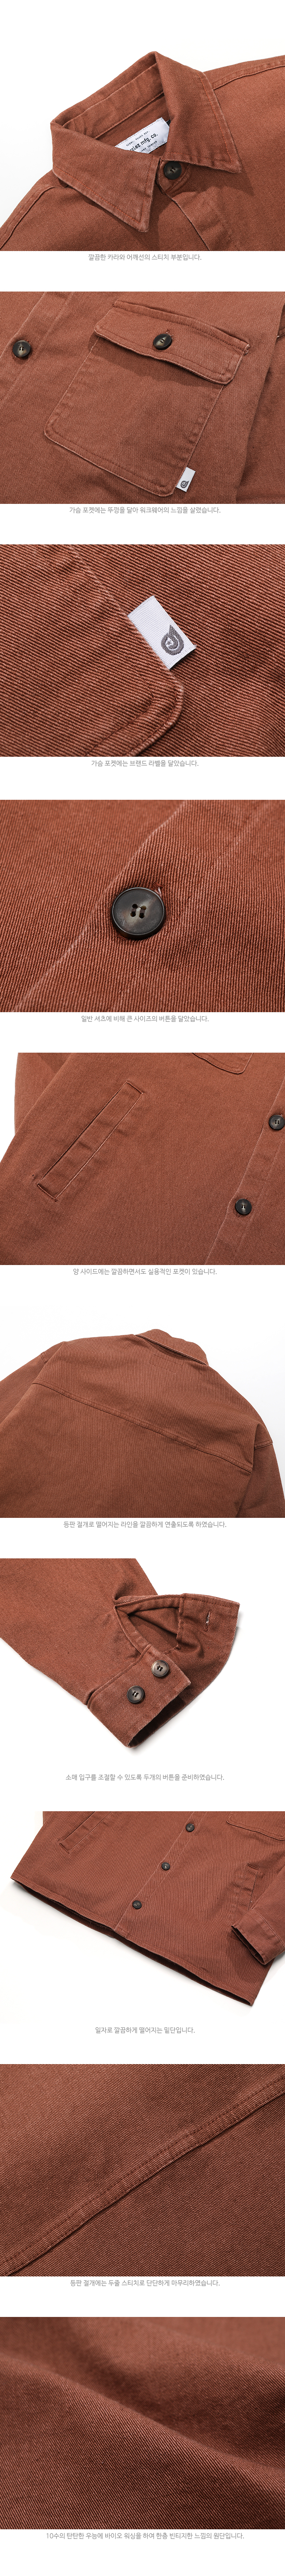 YSLS5105_detail_brown_02.jpg